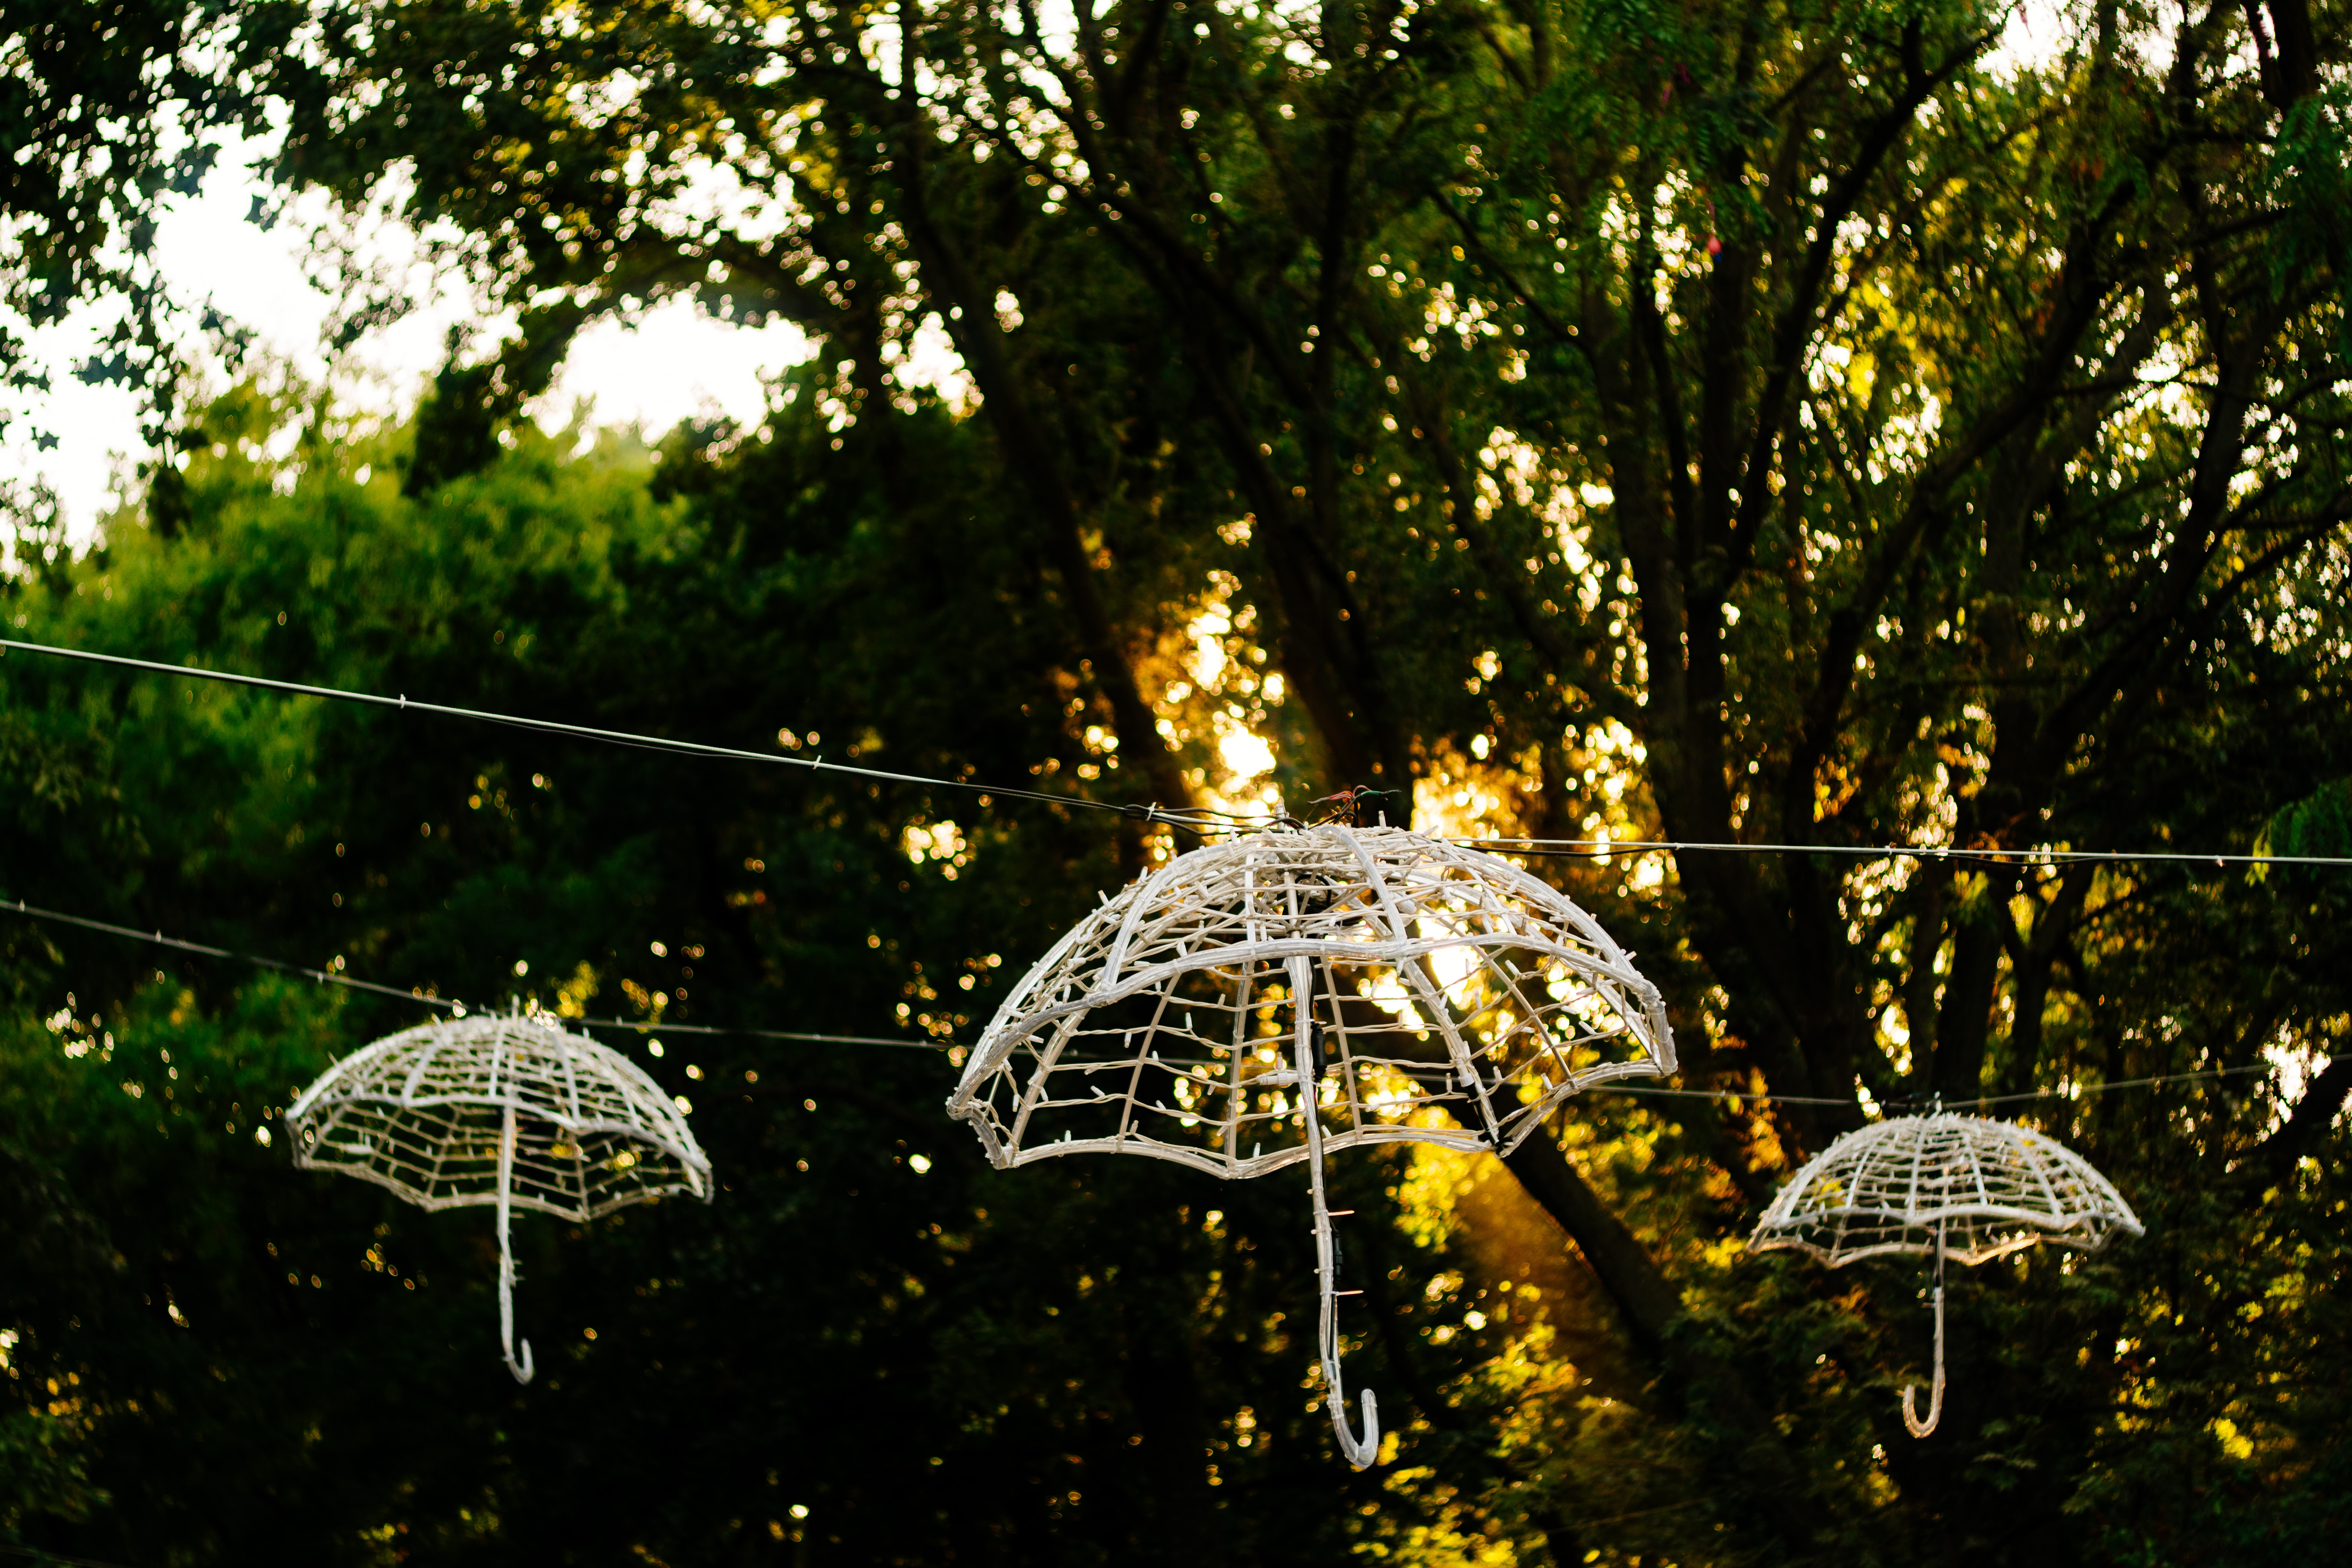 three white umbrella frame hanging decors hangs on string near tree